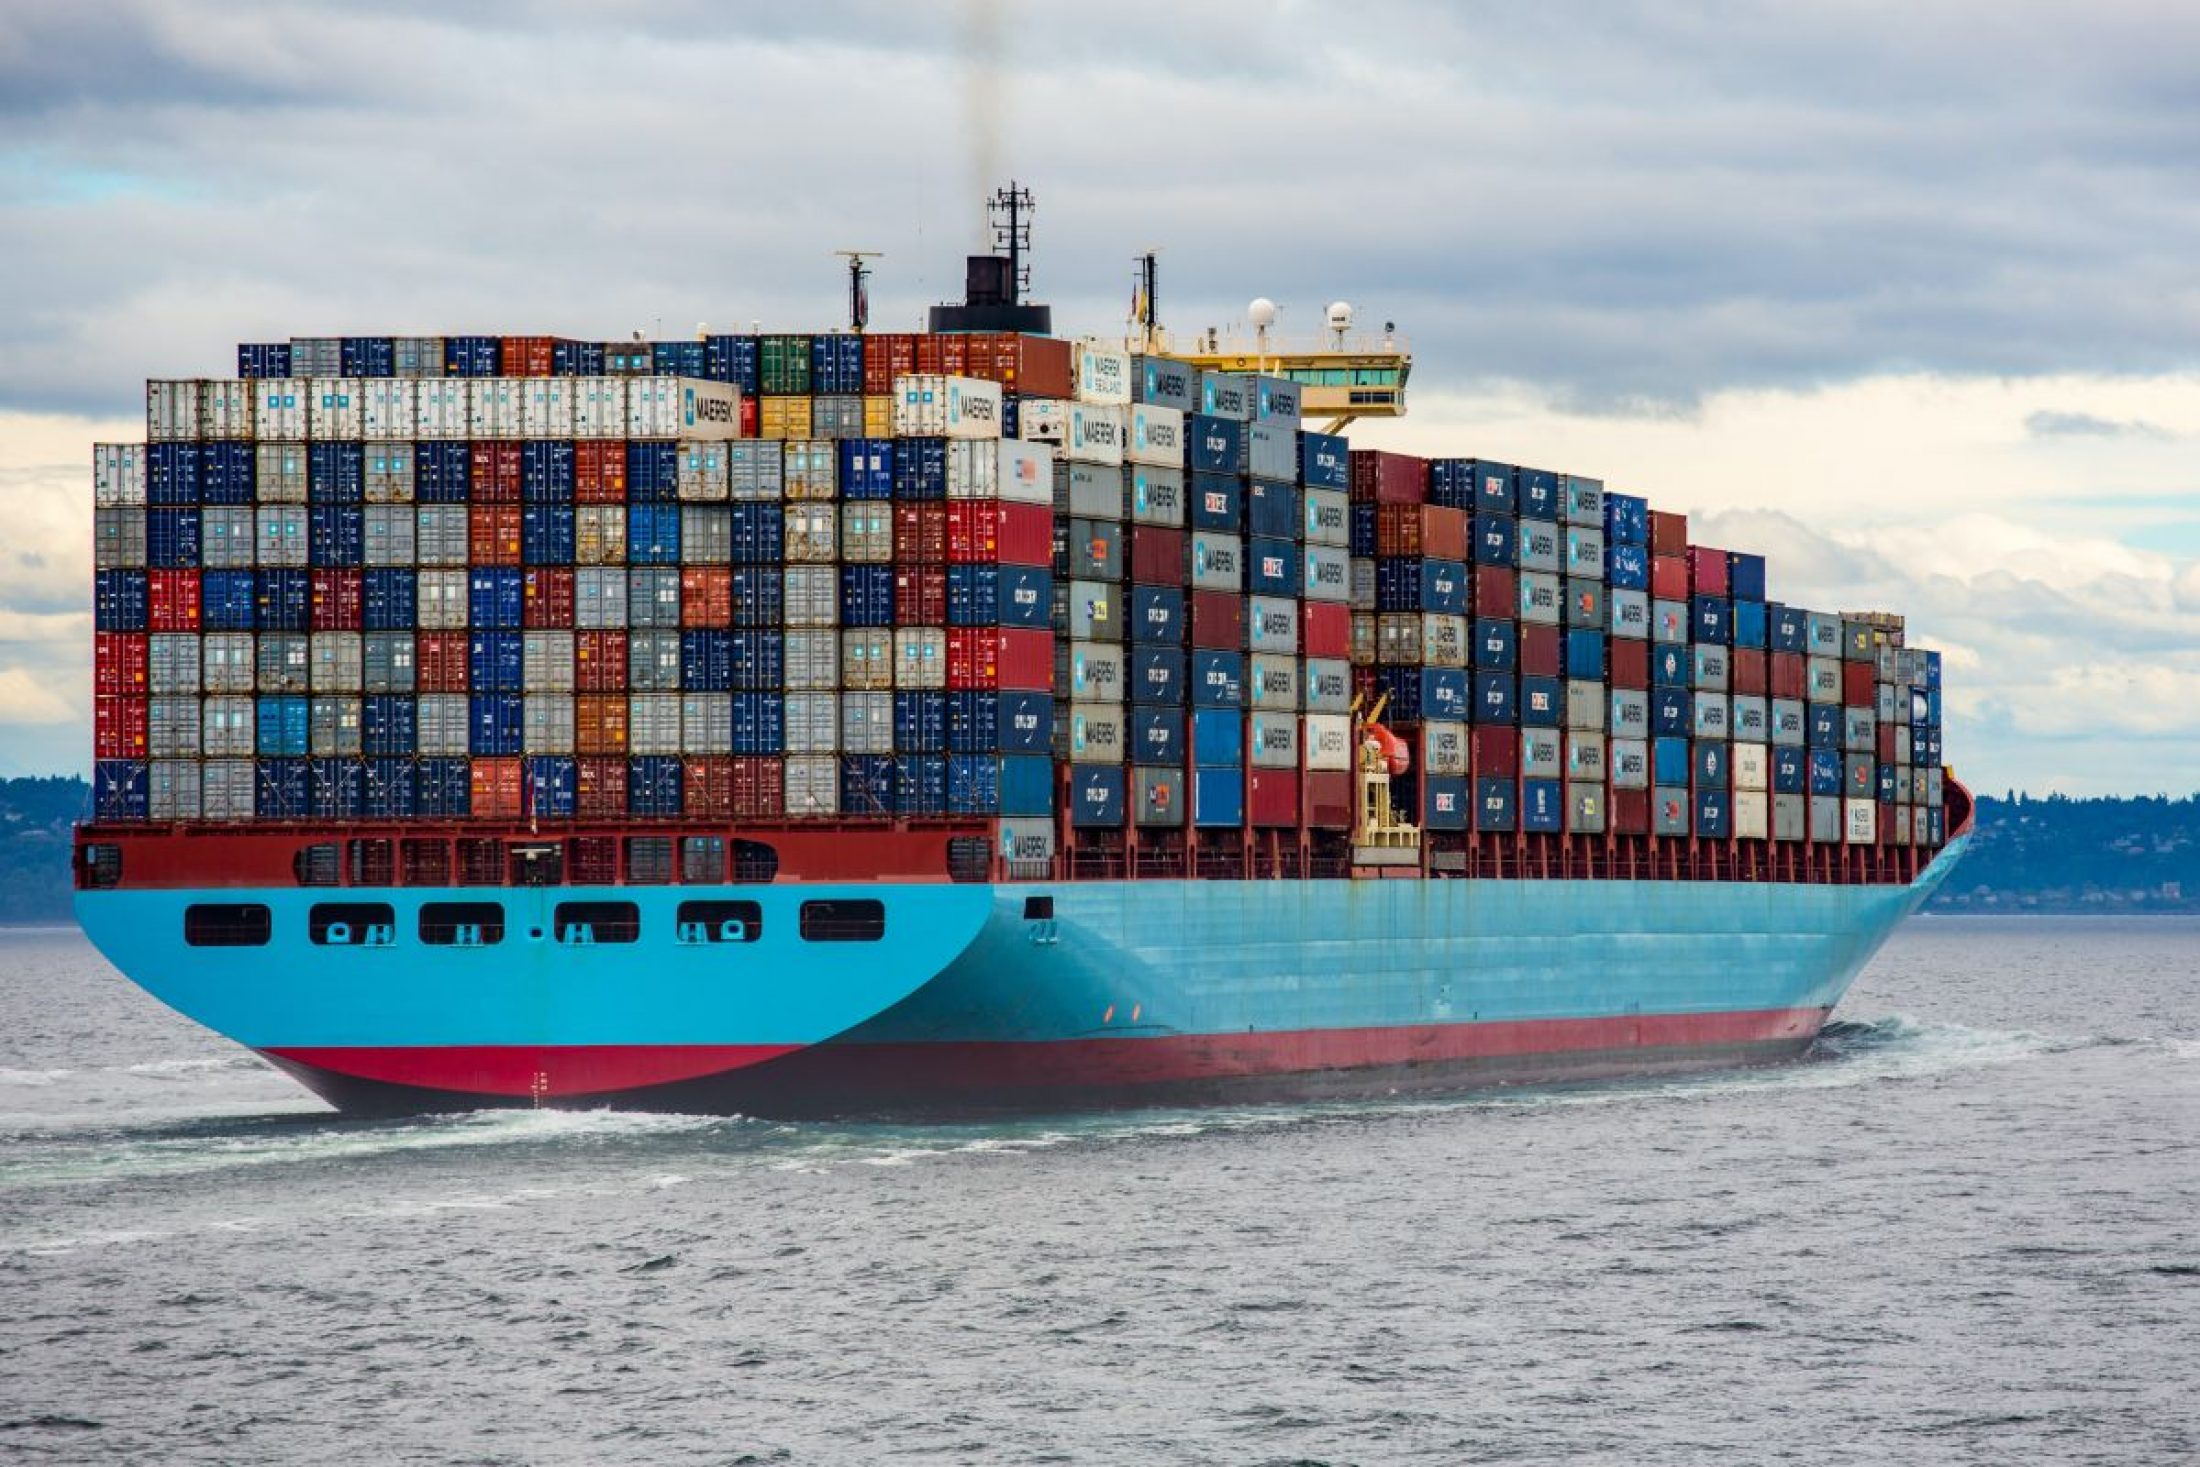 According to the European Commission, the shipping industry accounts for around two per cent of global CO2 emissions